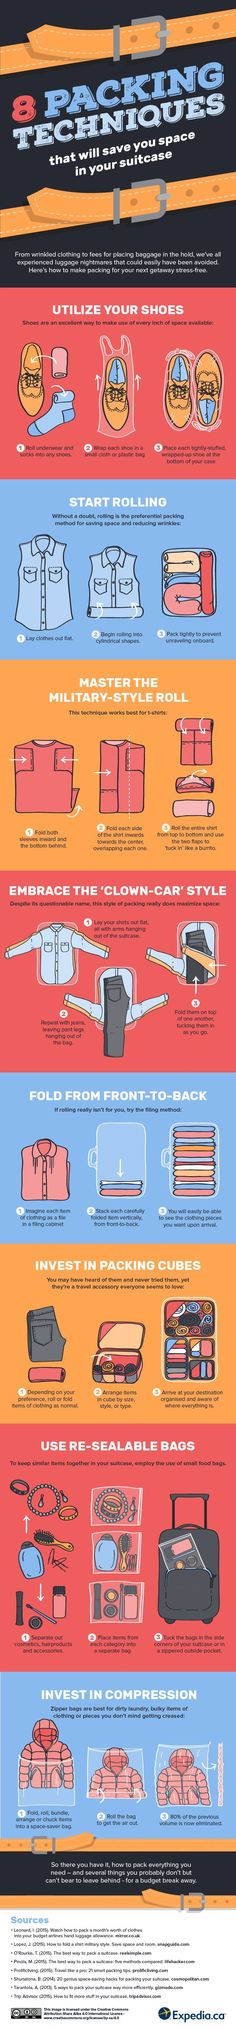 8 Packing Techniques That Will Save You Space In Your Suitcase #Infographic… #adventuretraveltips